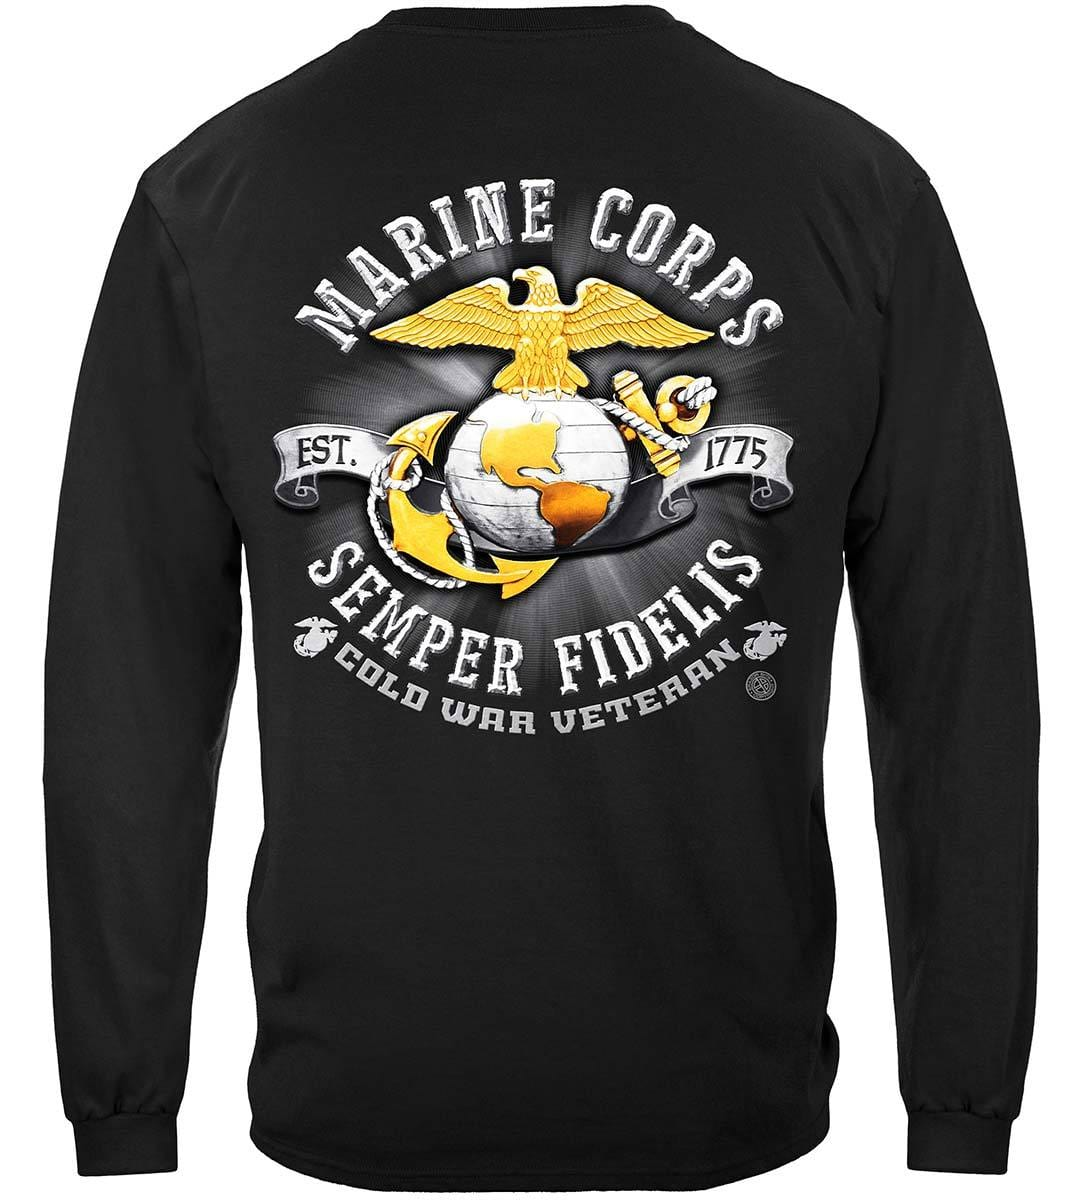 USMC Cold War Vet Premium Long Sleeves